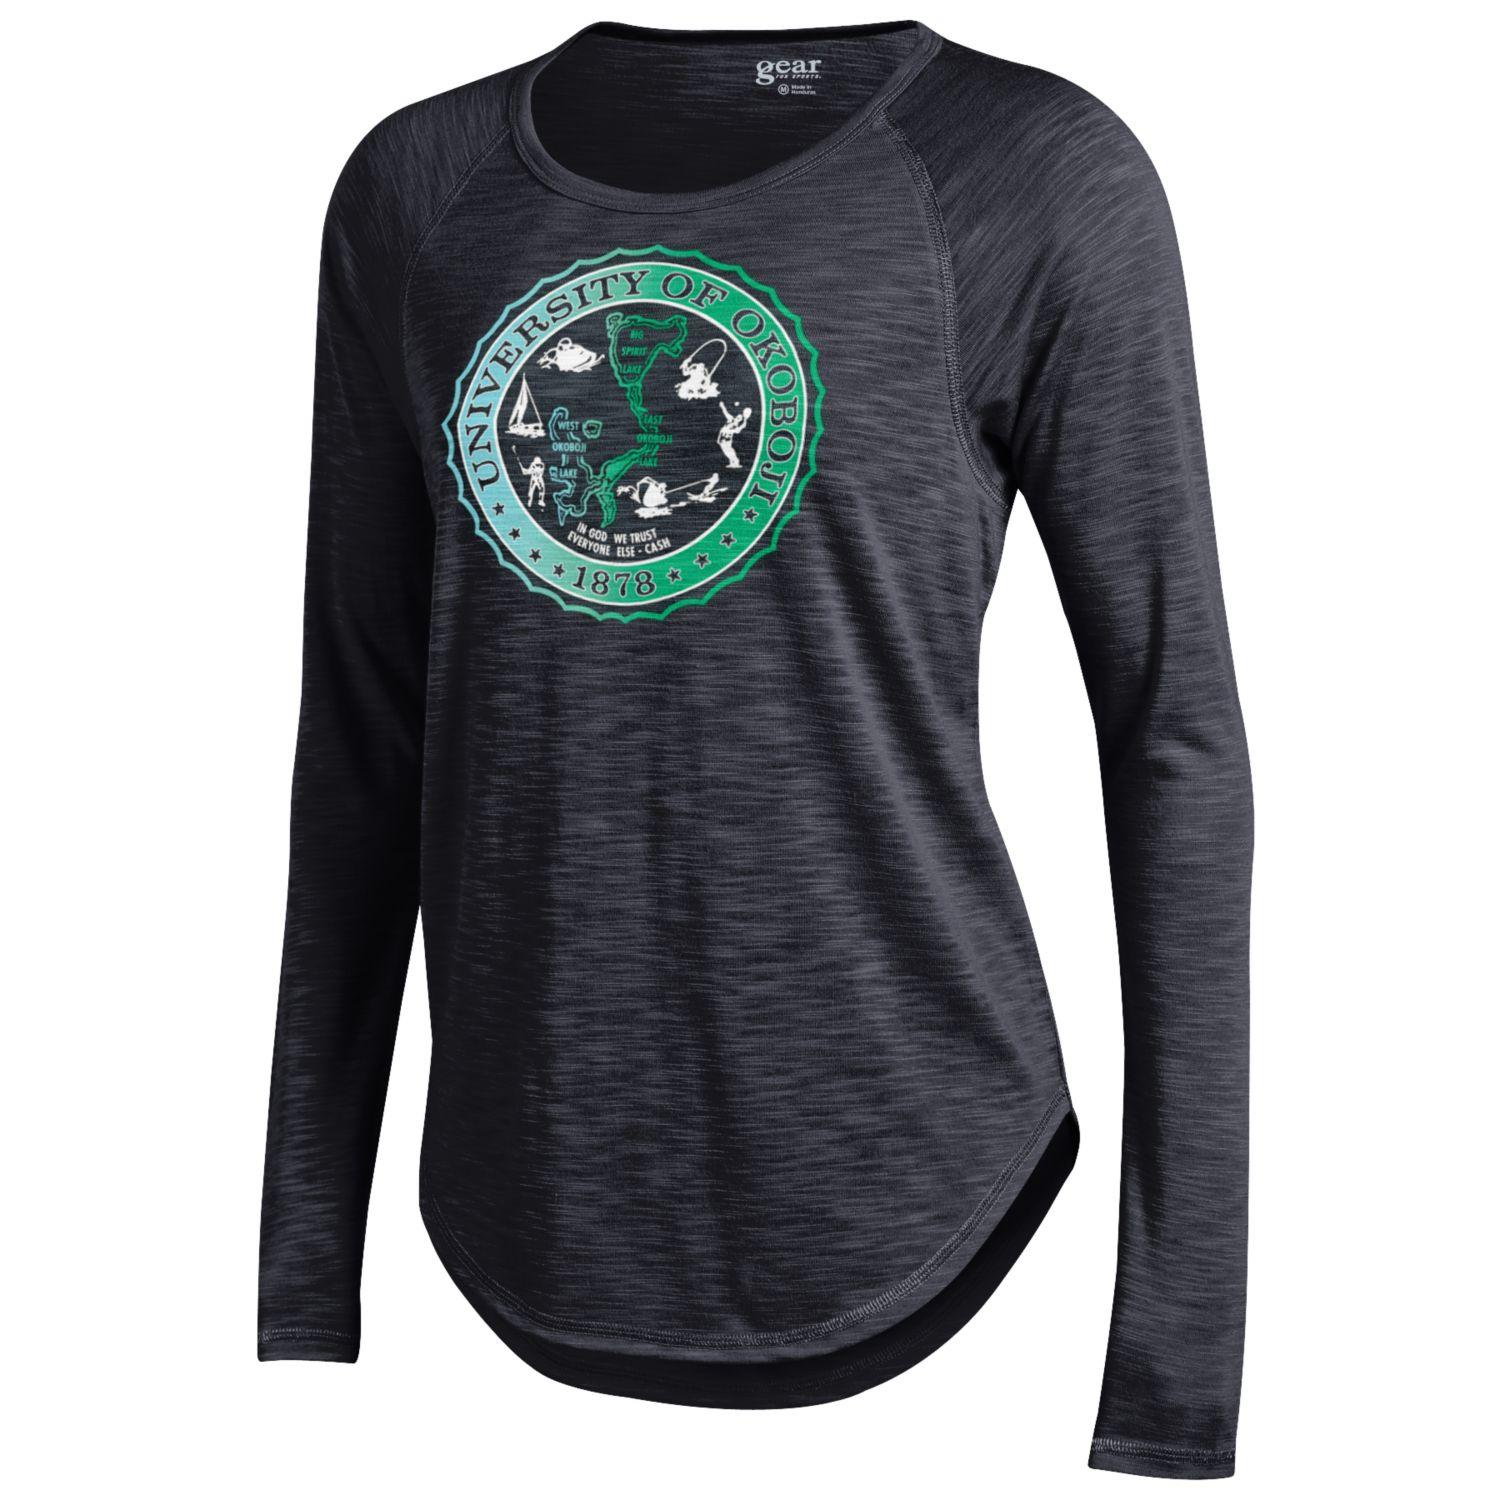 Women's U of O Crest Rendezvous Raglan Tee-Black